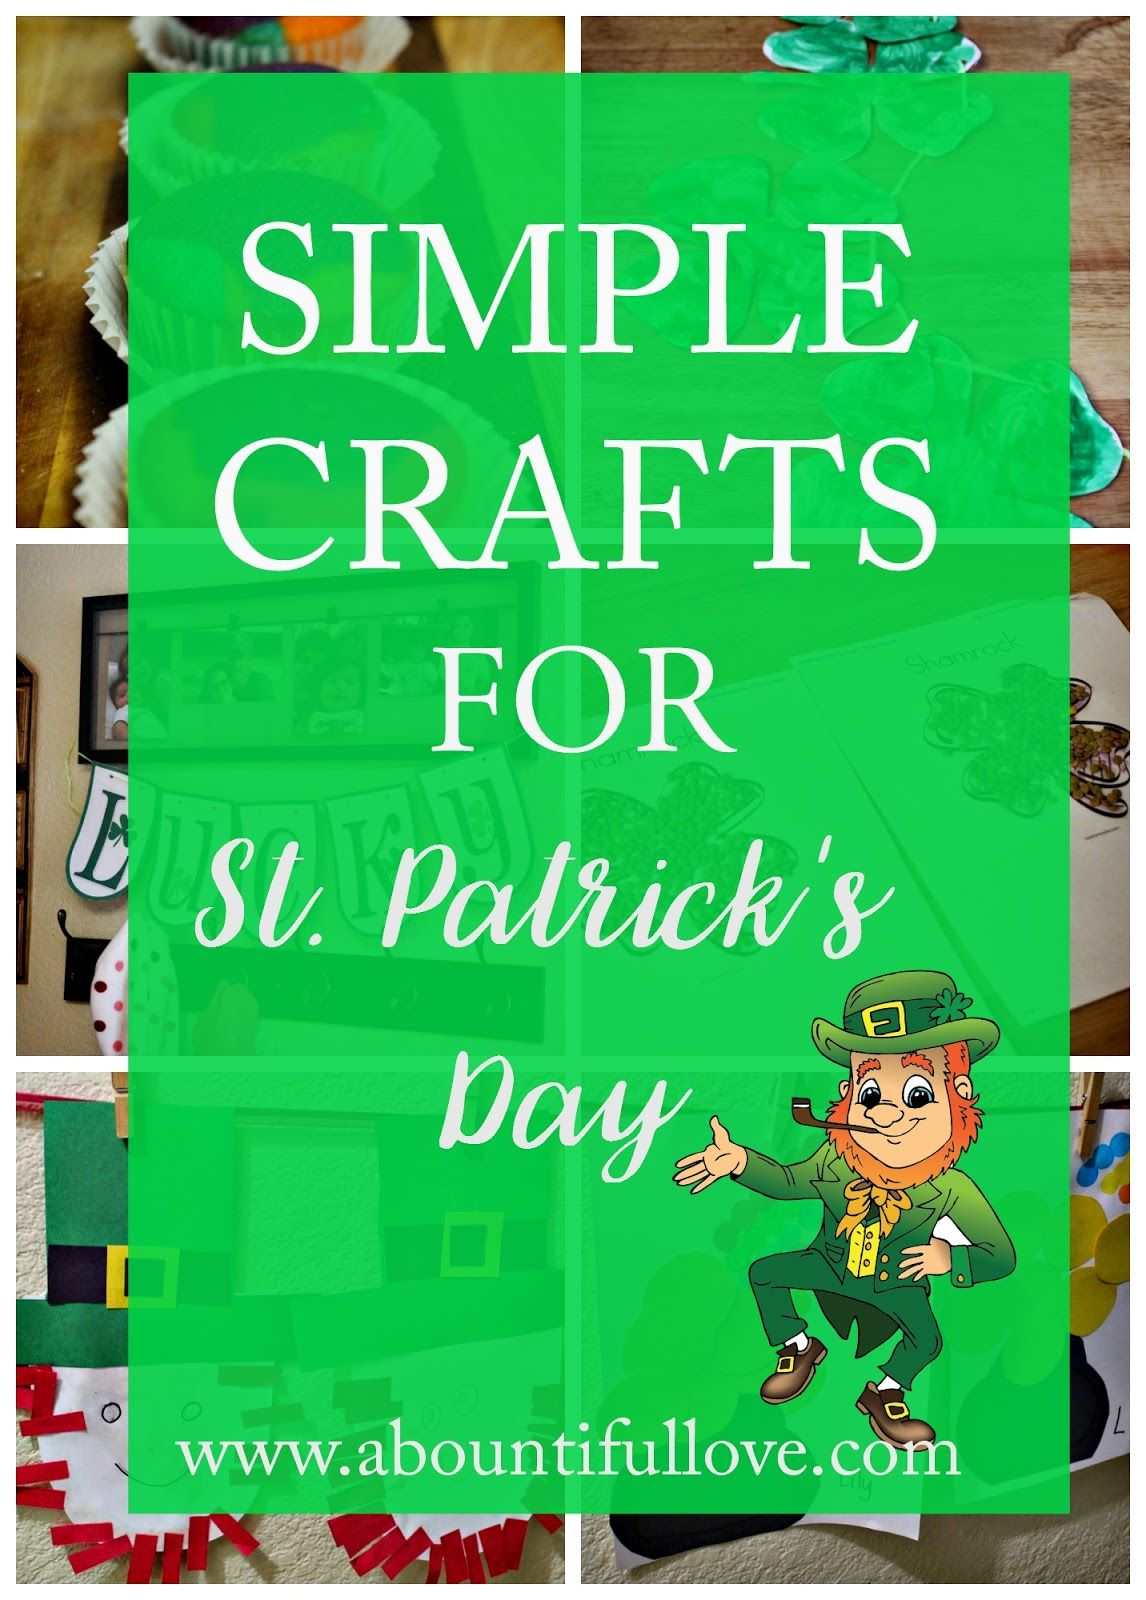 Who is St. Patrick? Crafts shouldn't be expensive! Here's easy and inexpensive St. Patrick's Day